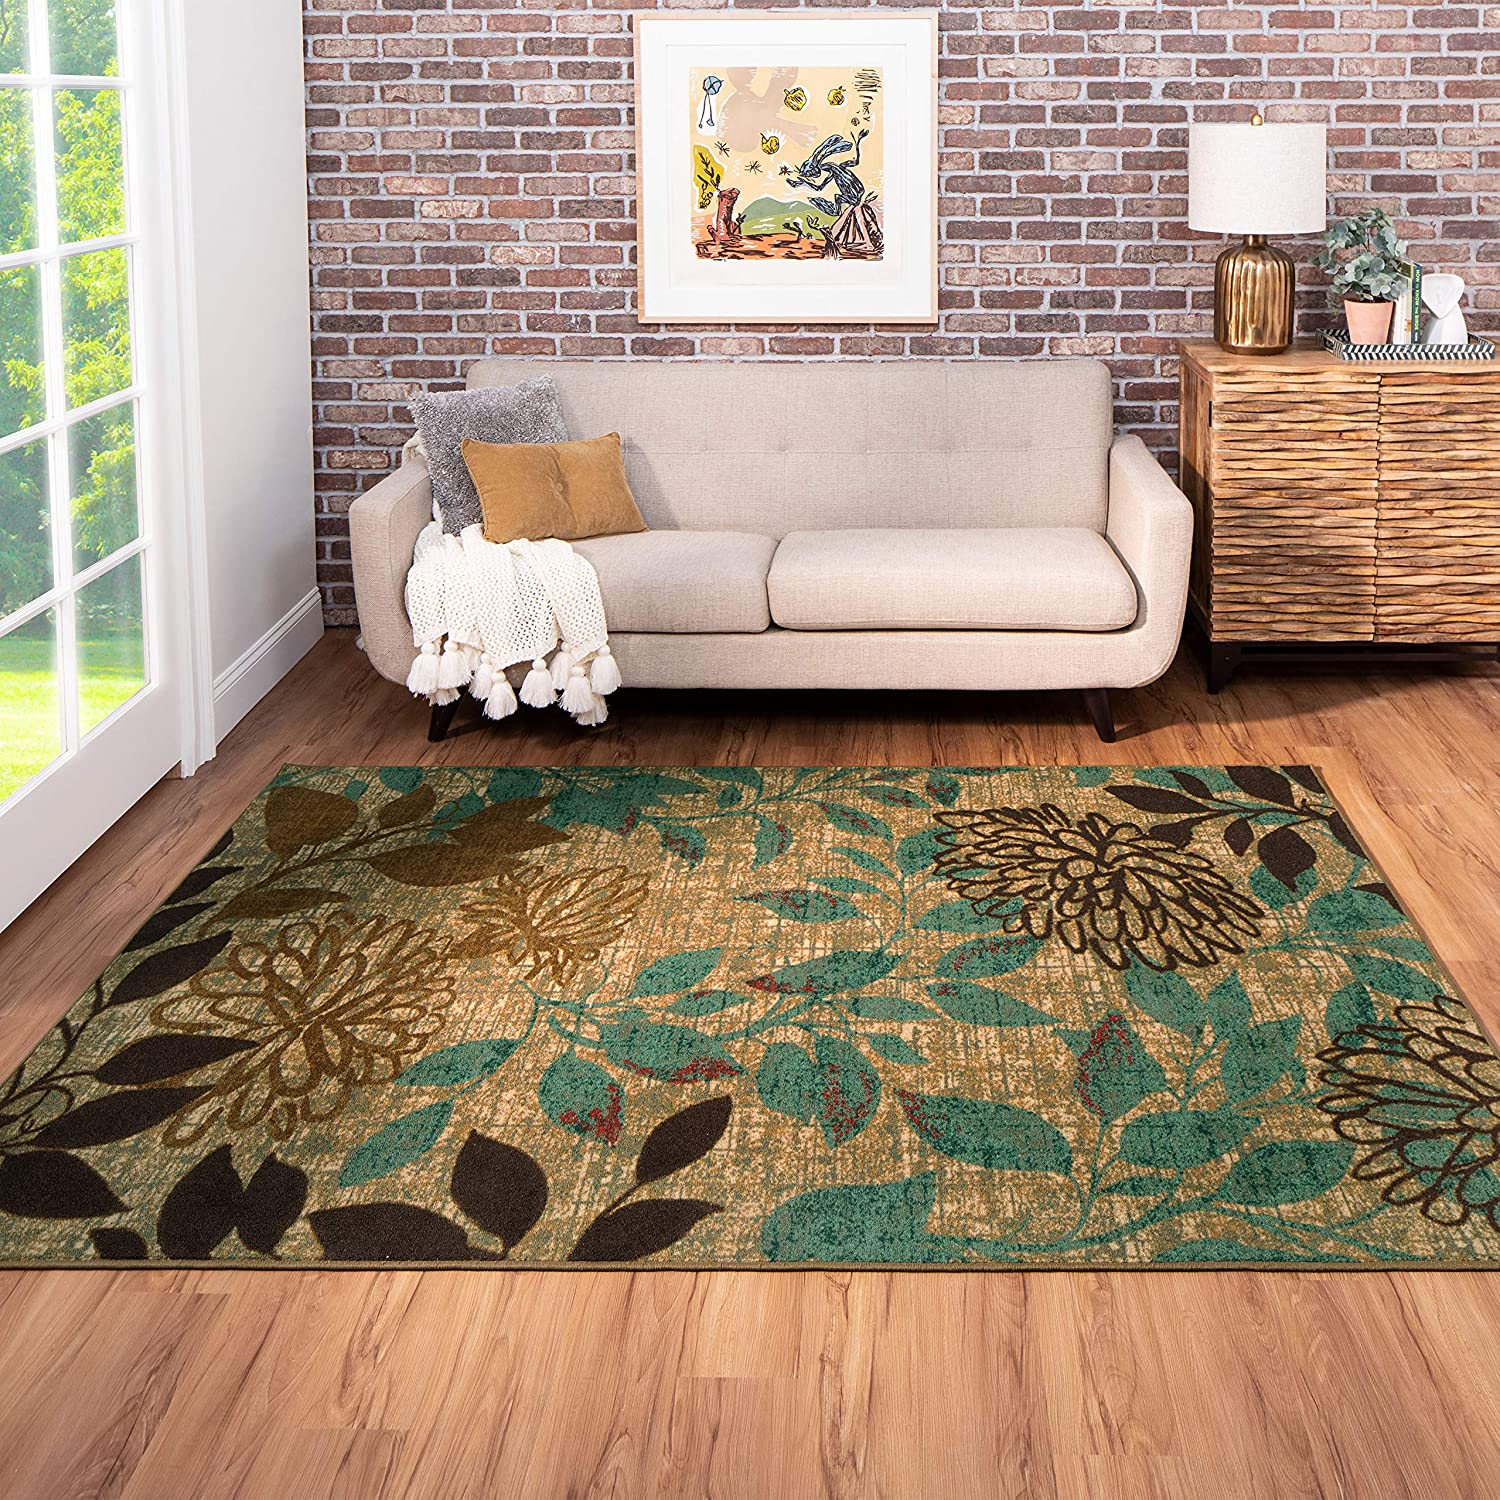 Mohawk Home Bella Garden Floral Indoor/Outdoor Patio Printed Area Rug, Multicolor